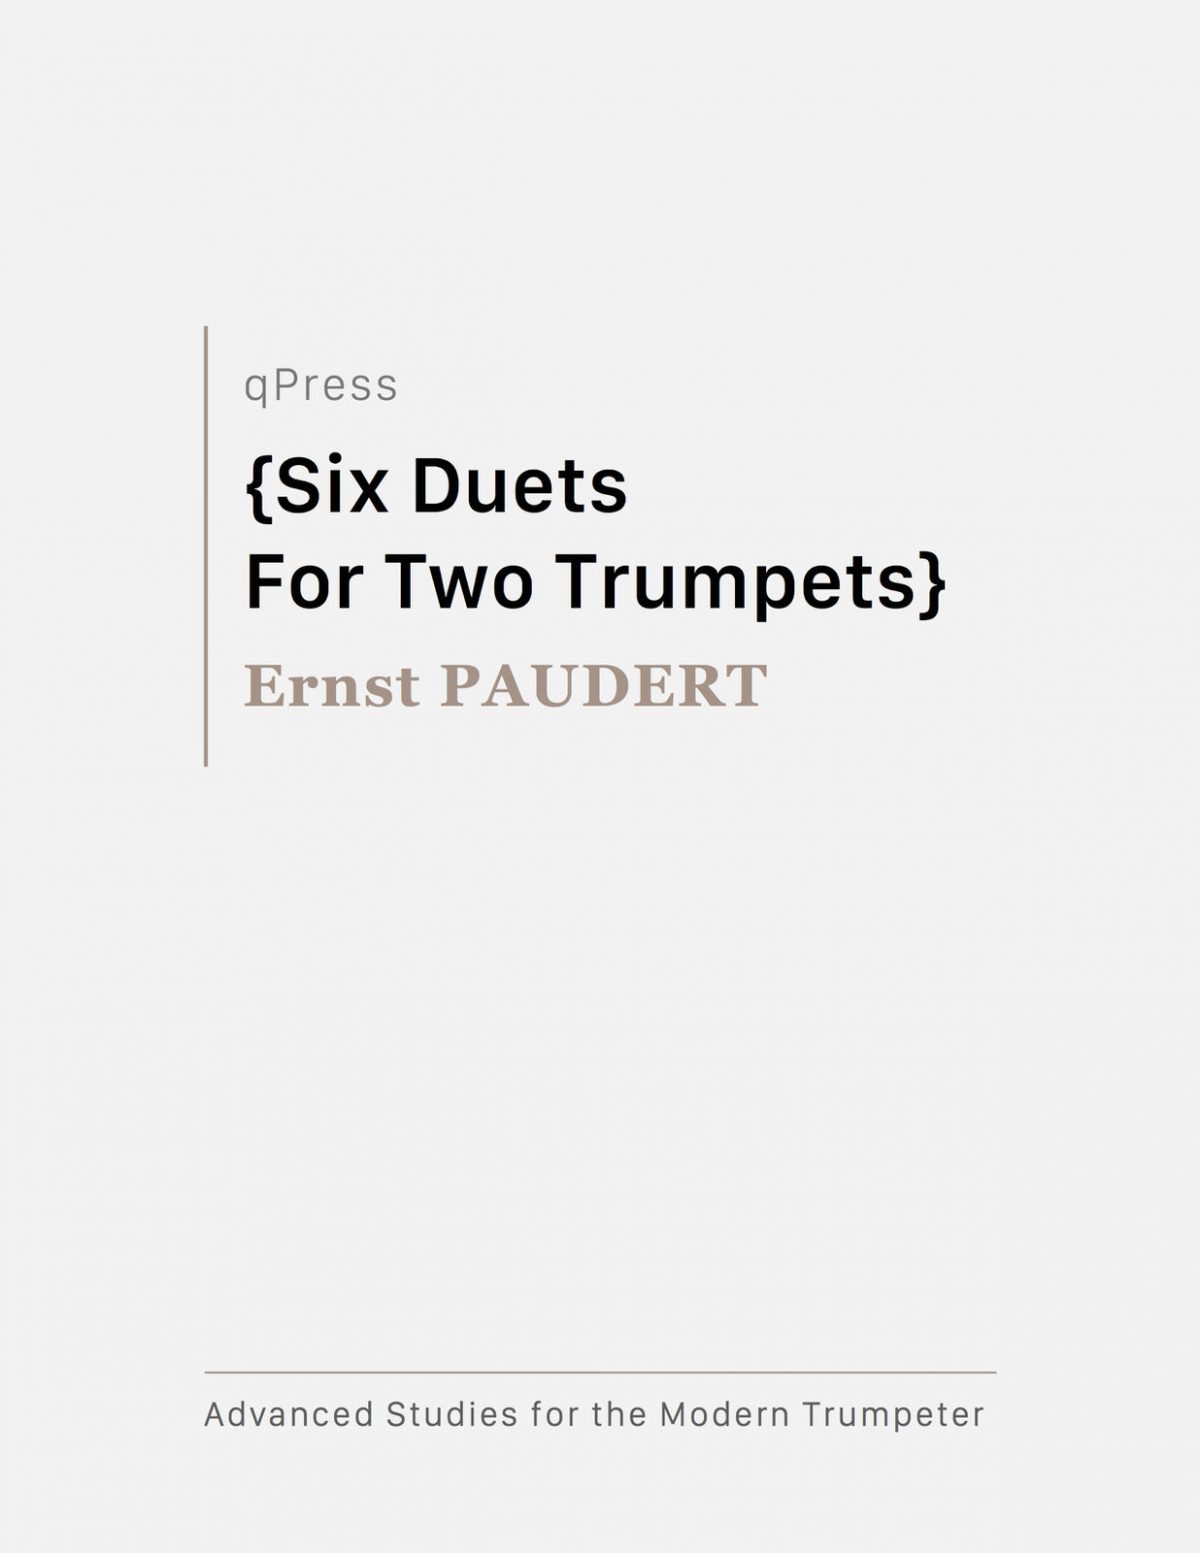 6 duets featured